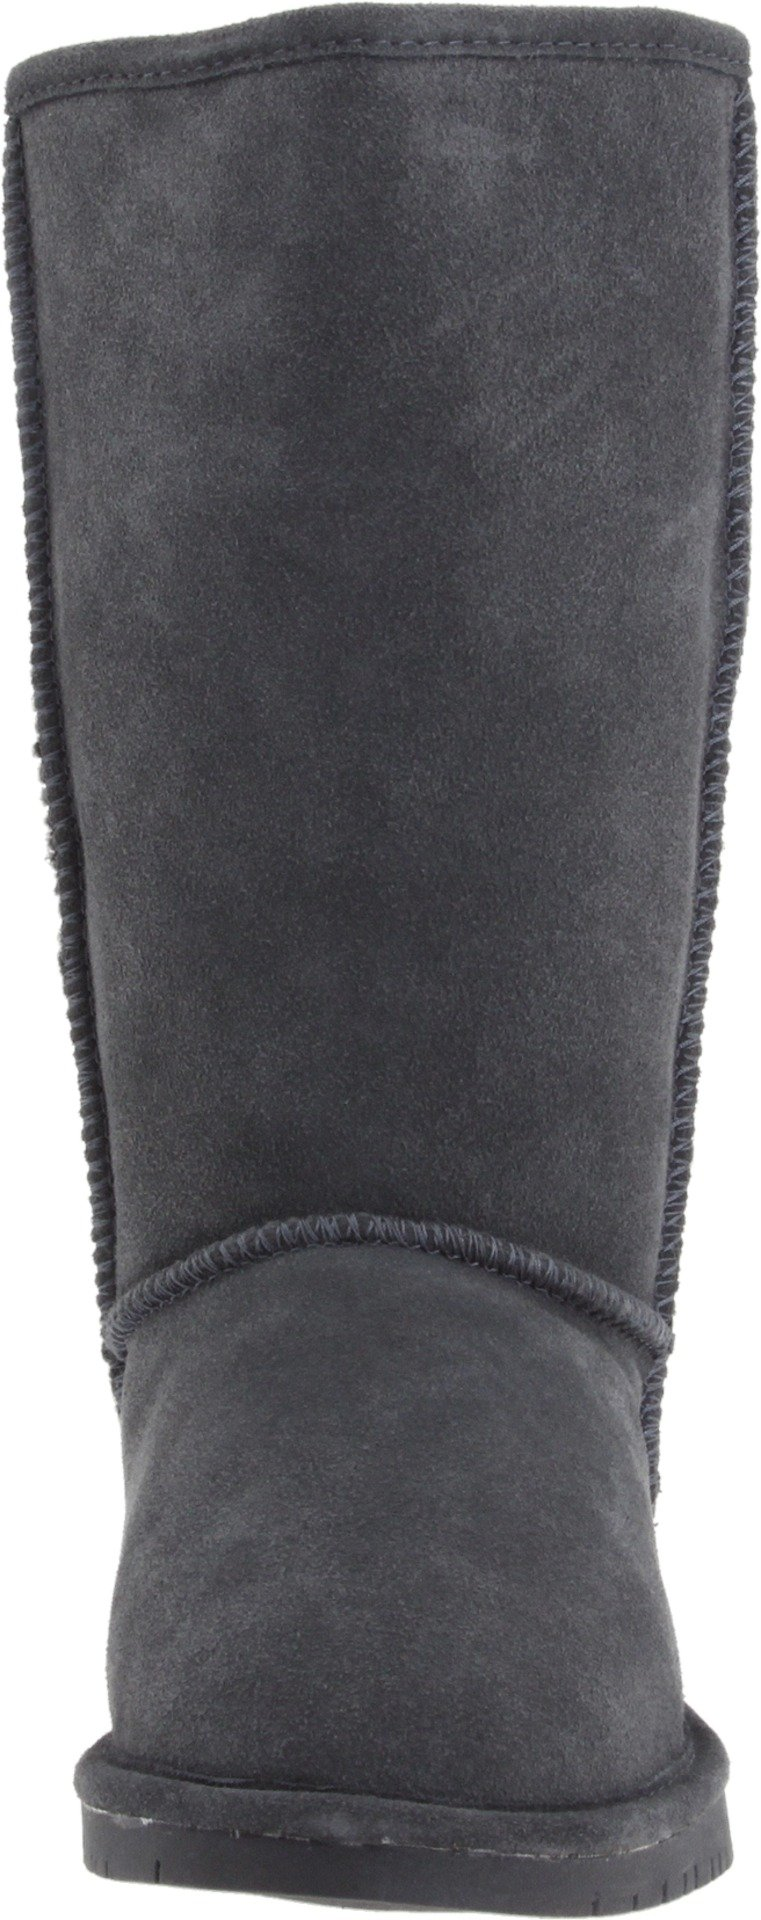 BEARPAW Women's Emma Tall Winter Boot, Charcoal, 9 M US by BEARPAW (Image #4)